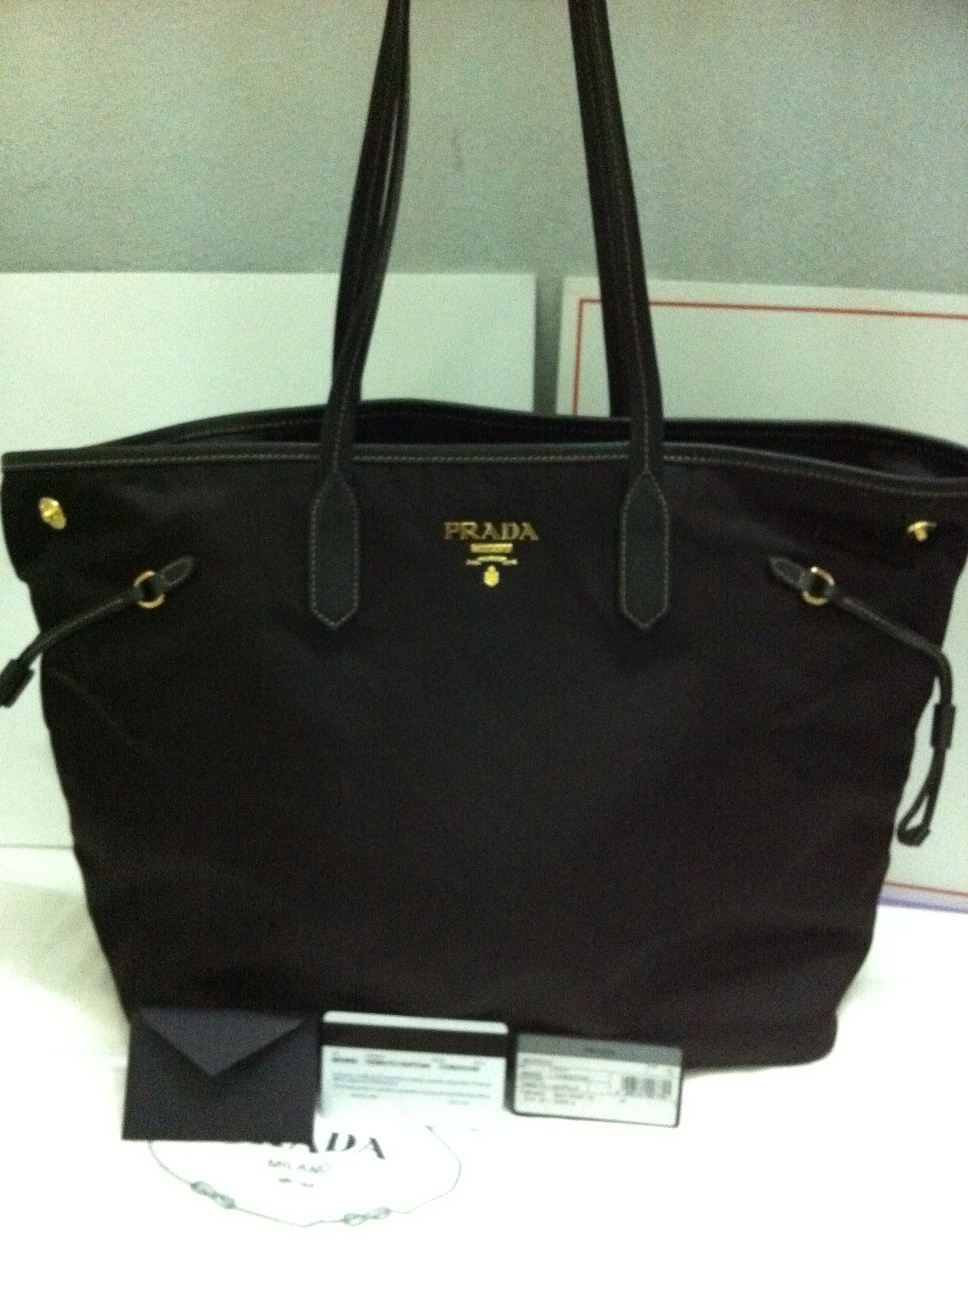 sale prada handbag - Authentic Luxury Items @ Bargain Price: NWT Prada BR4662 Tessuto ...